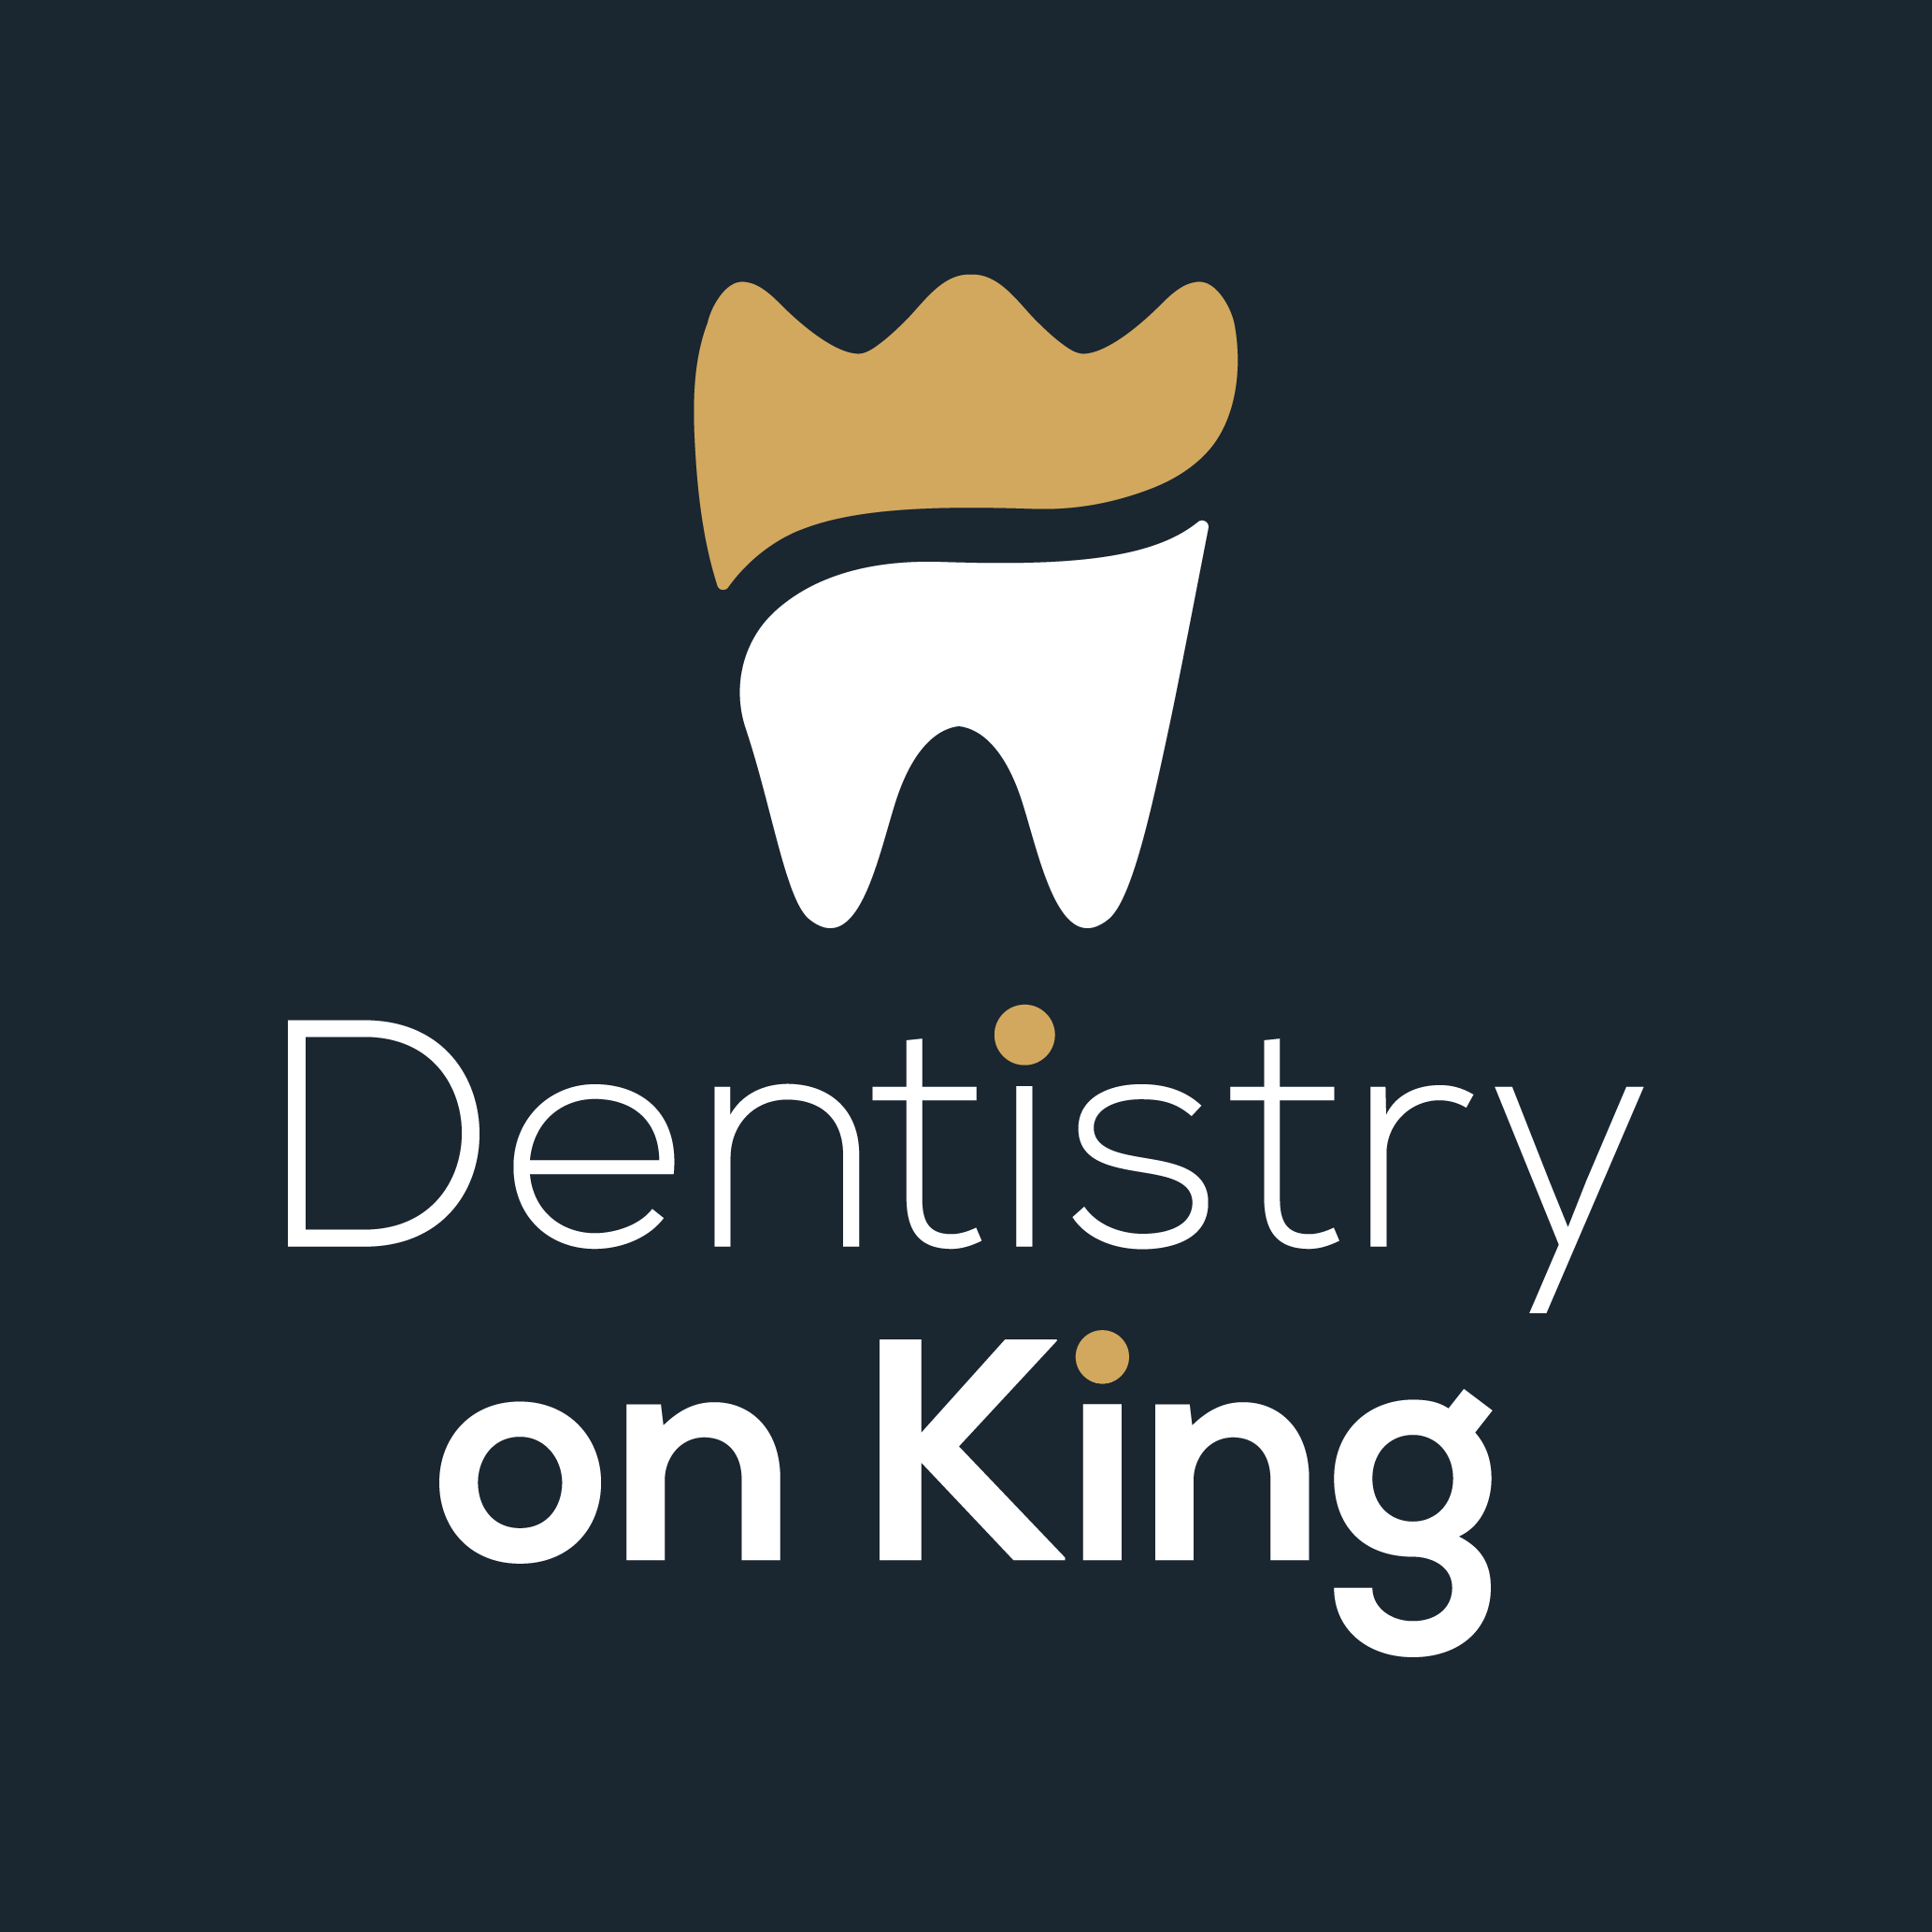 desntisty on king Desktop Logo